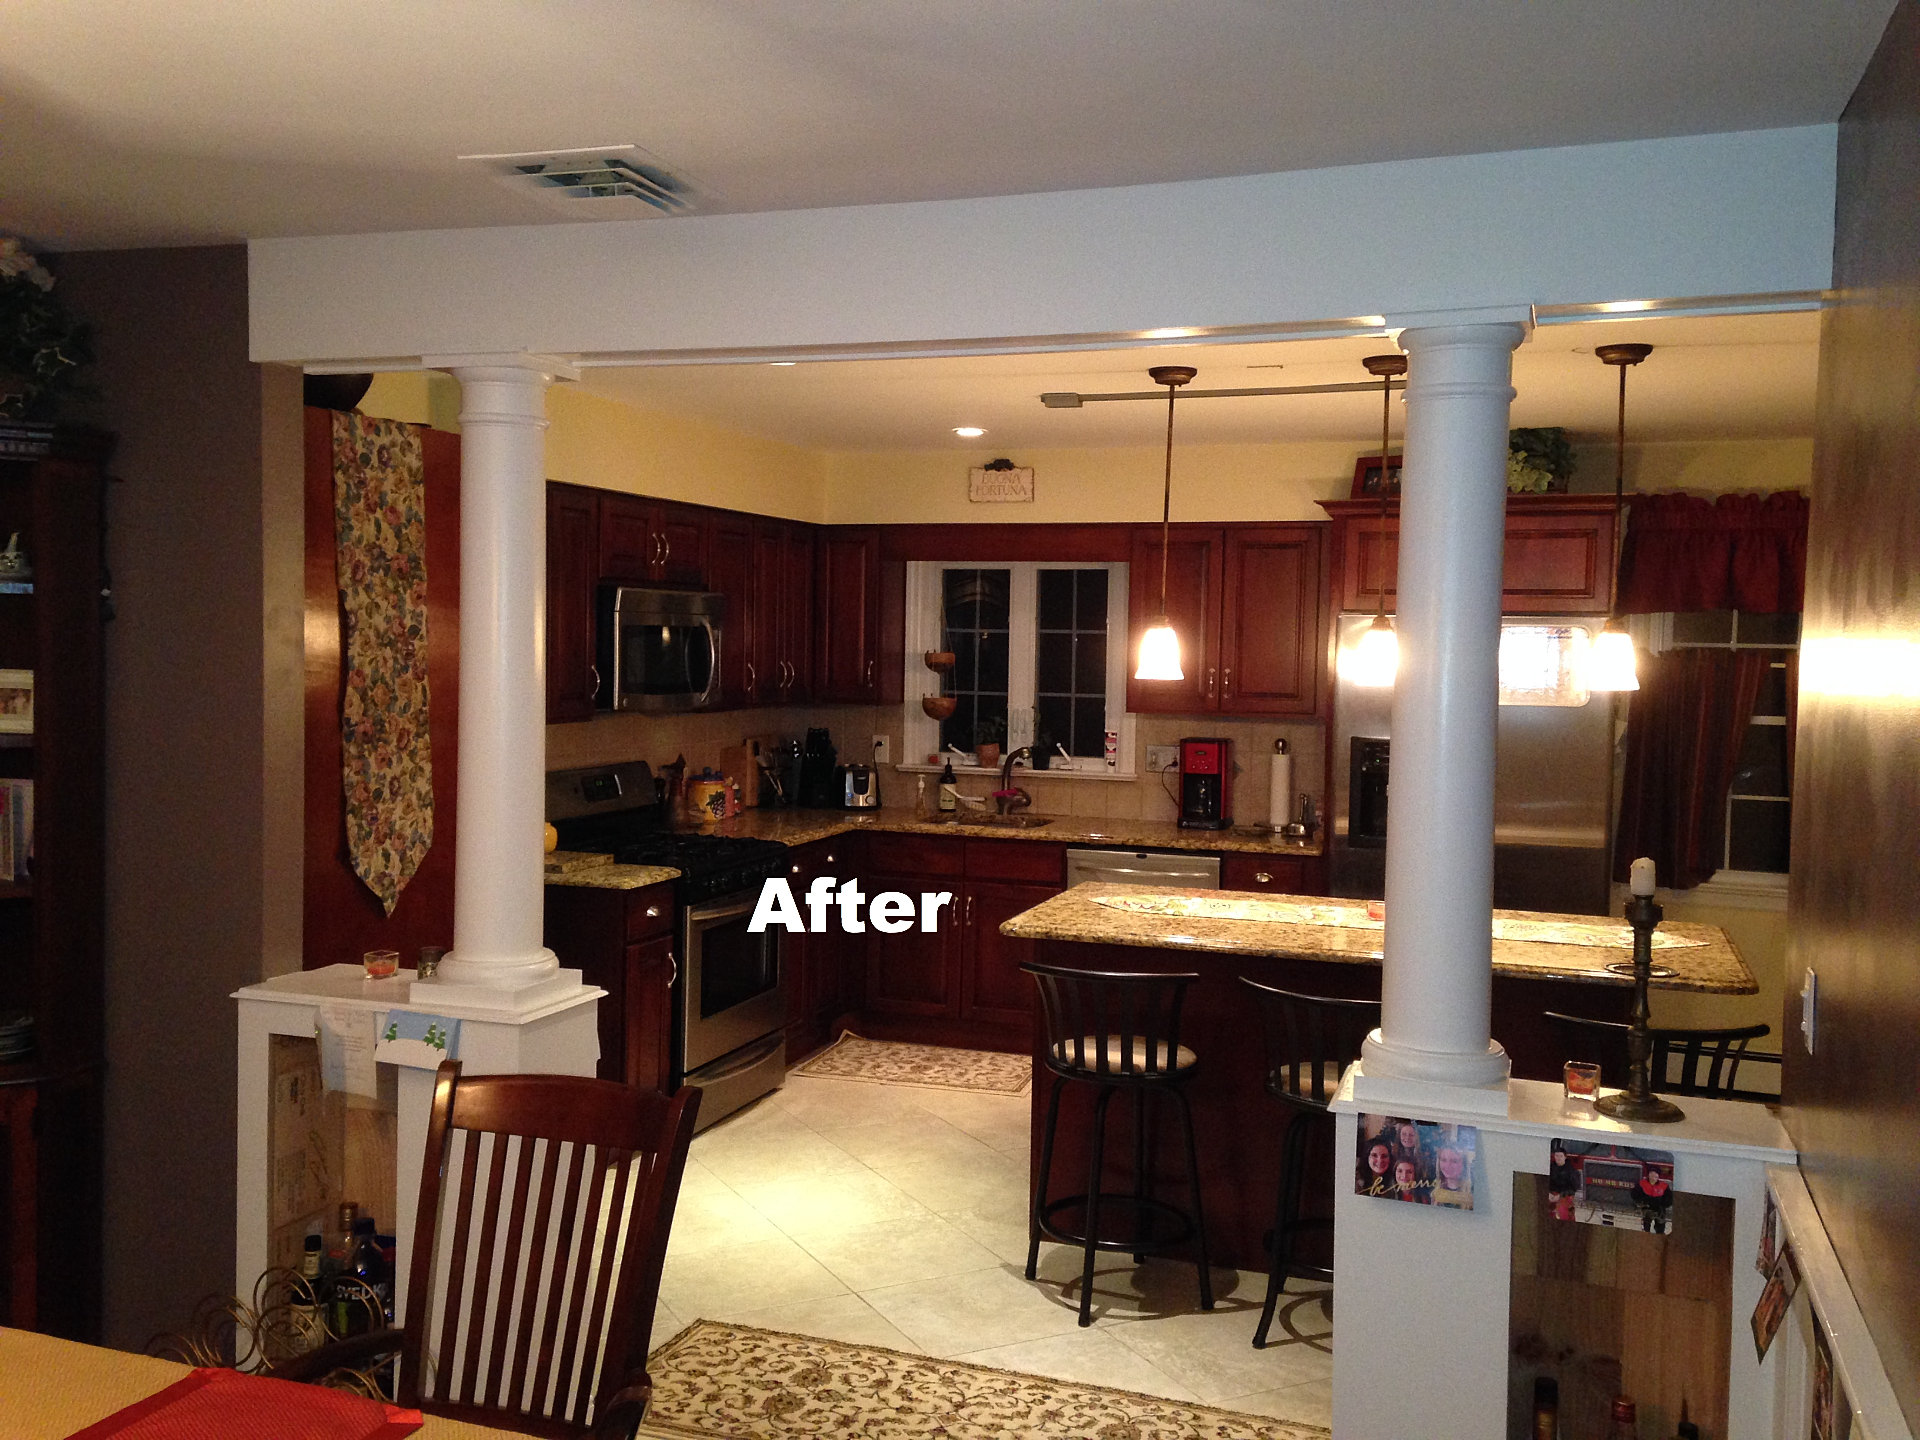 Home improvement contractors joe shadel general contracting dining room columns renovation - Dining room renovation ...